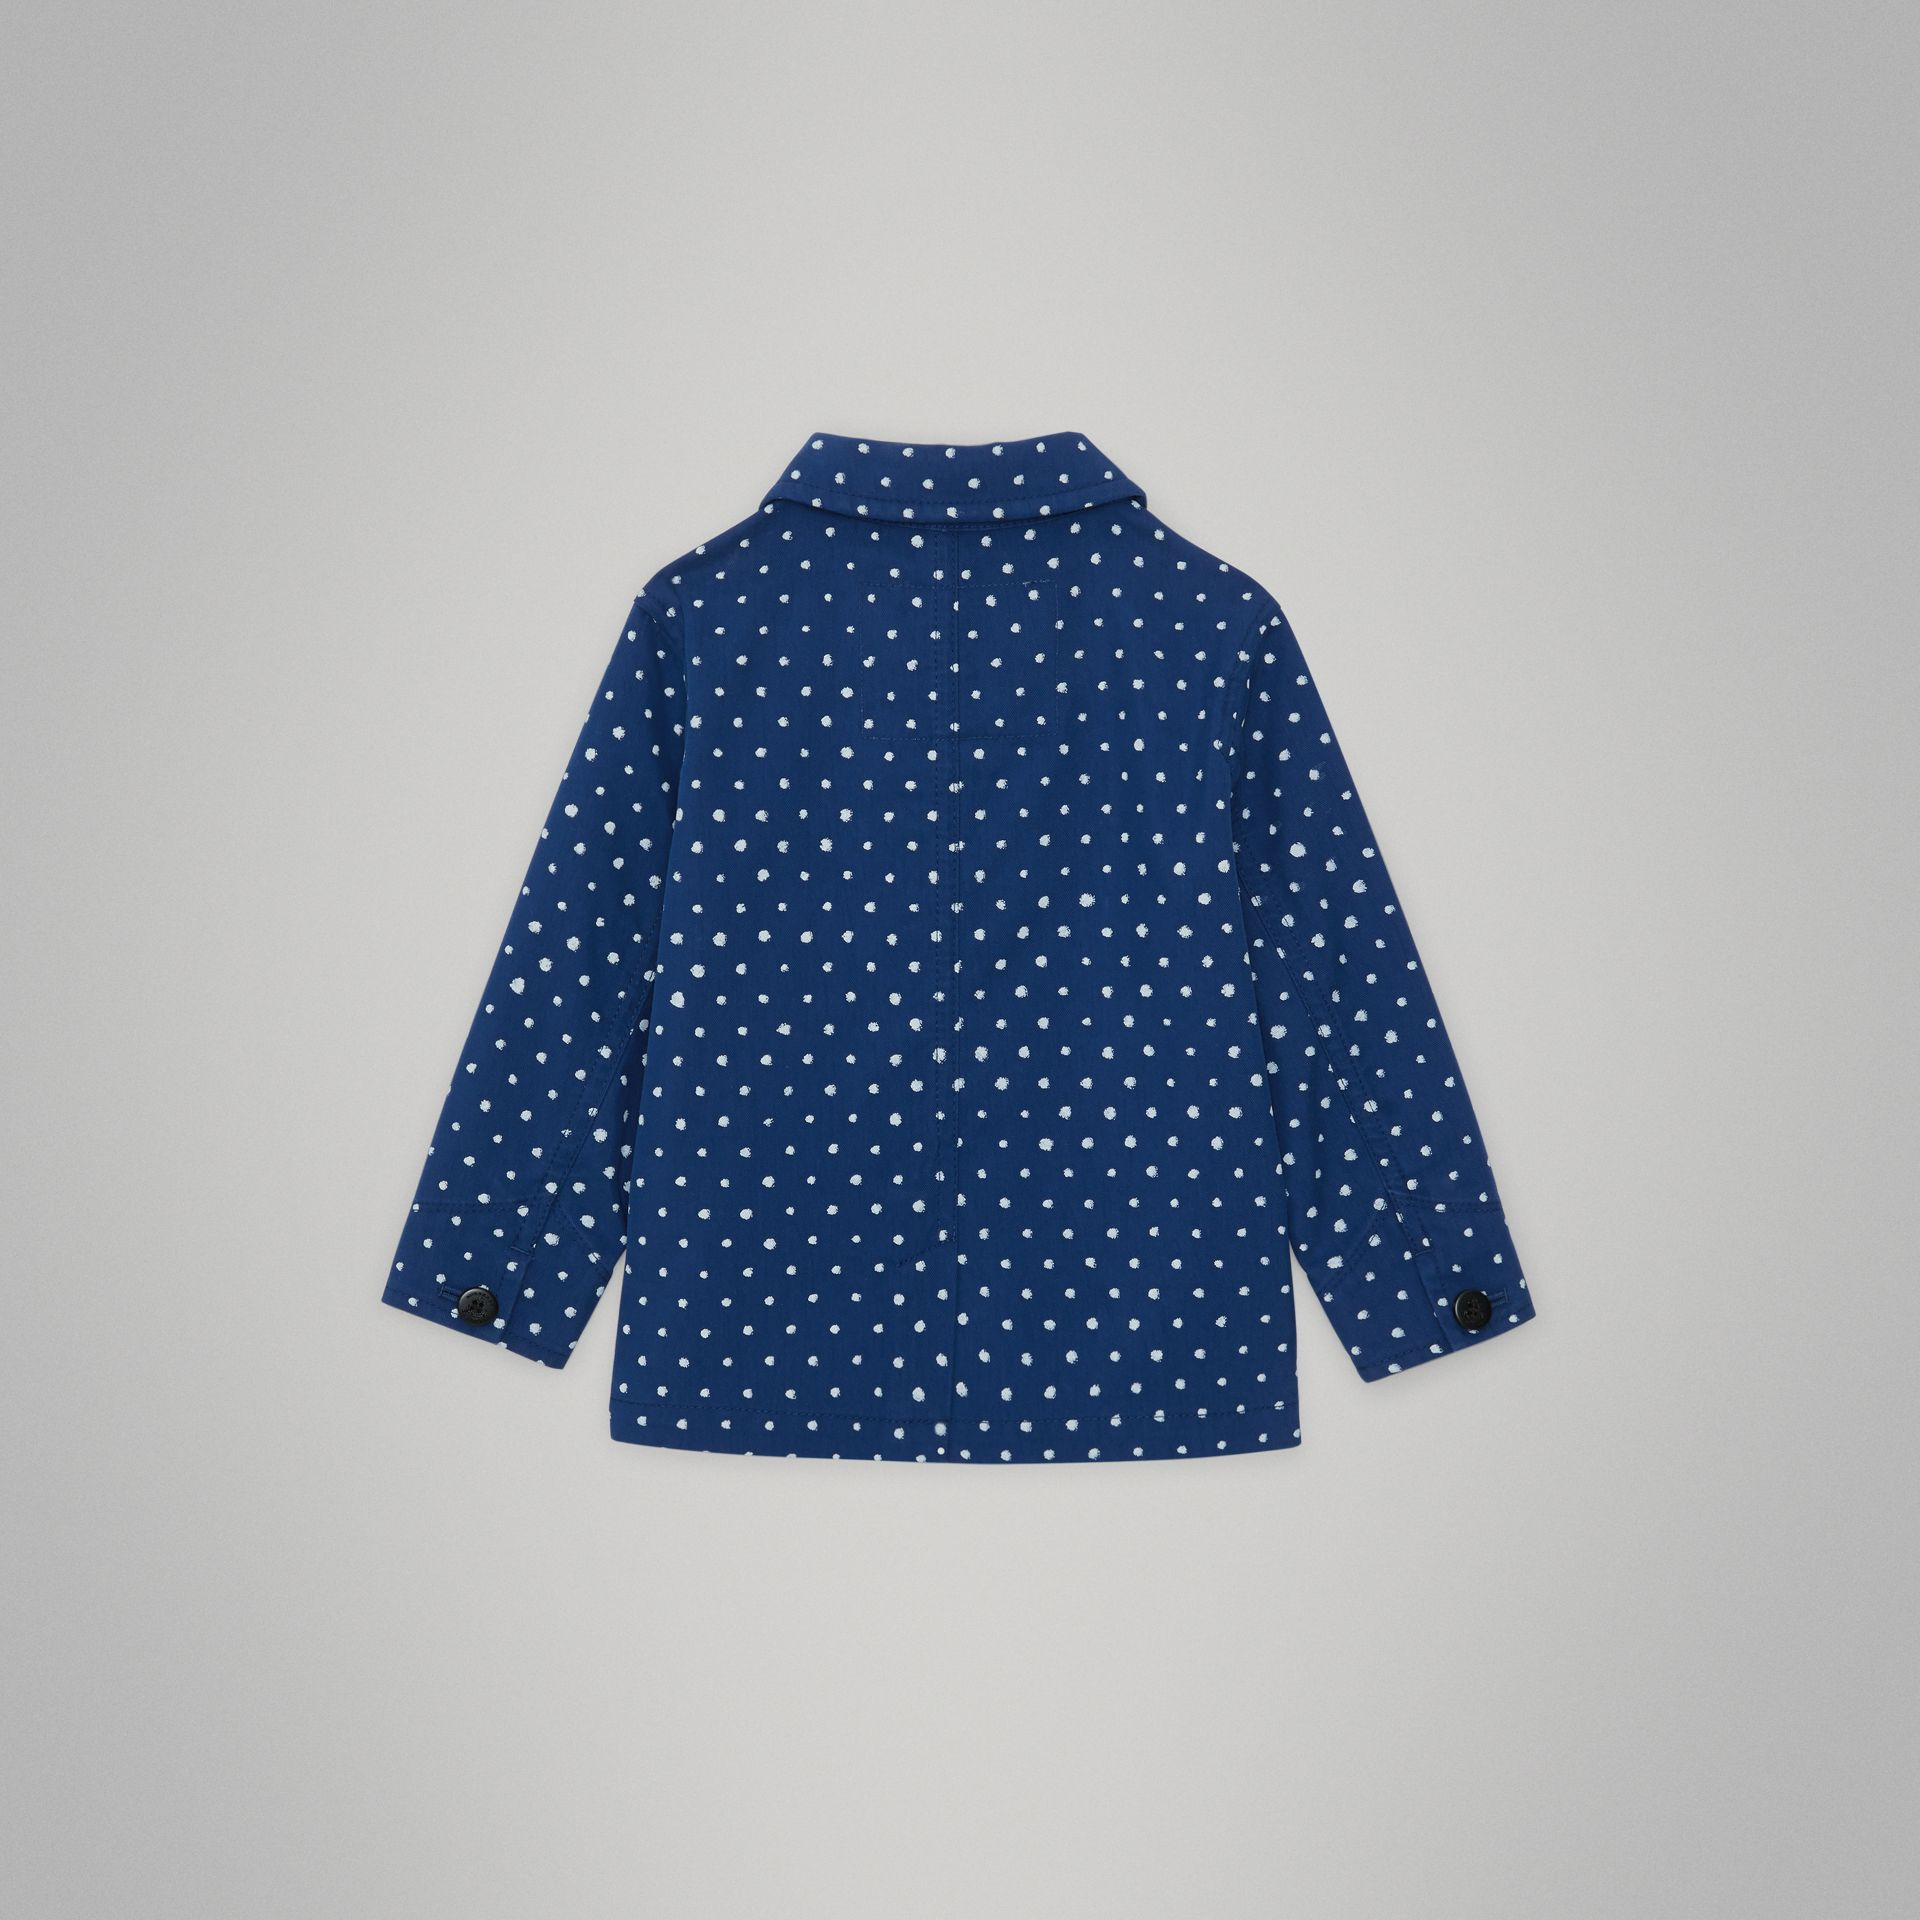 Spot Print Cotton Blend Jacket in Bright Navy - Children | Burberry United Kingdom - gallery image 3